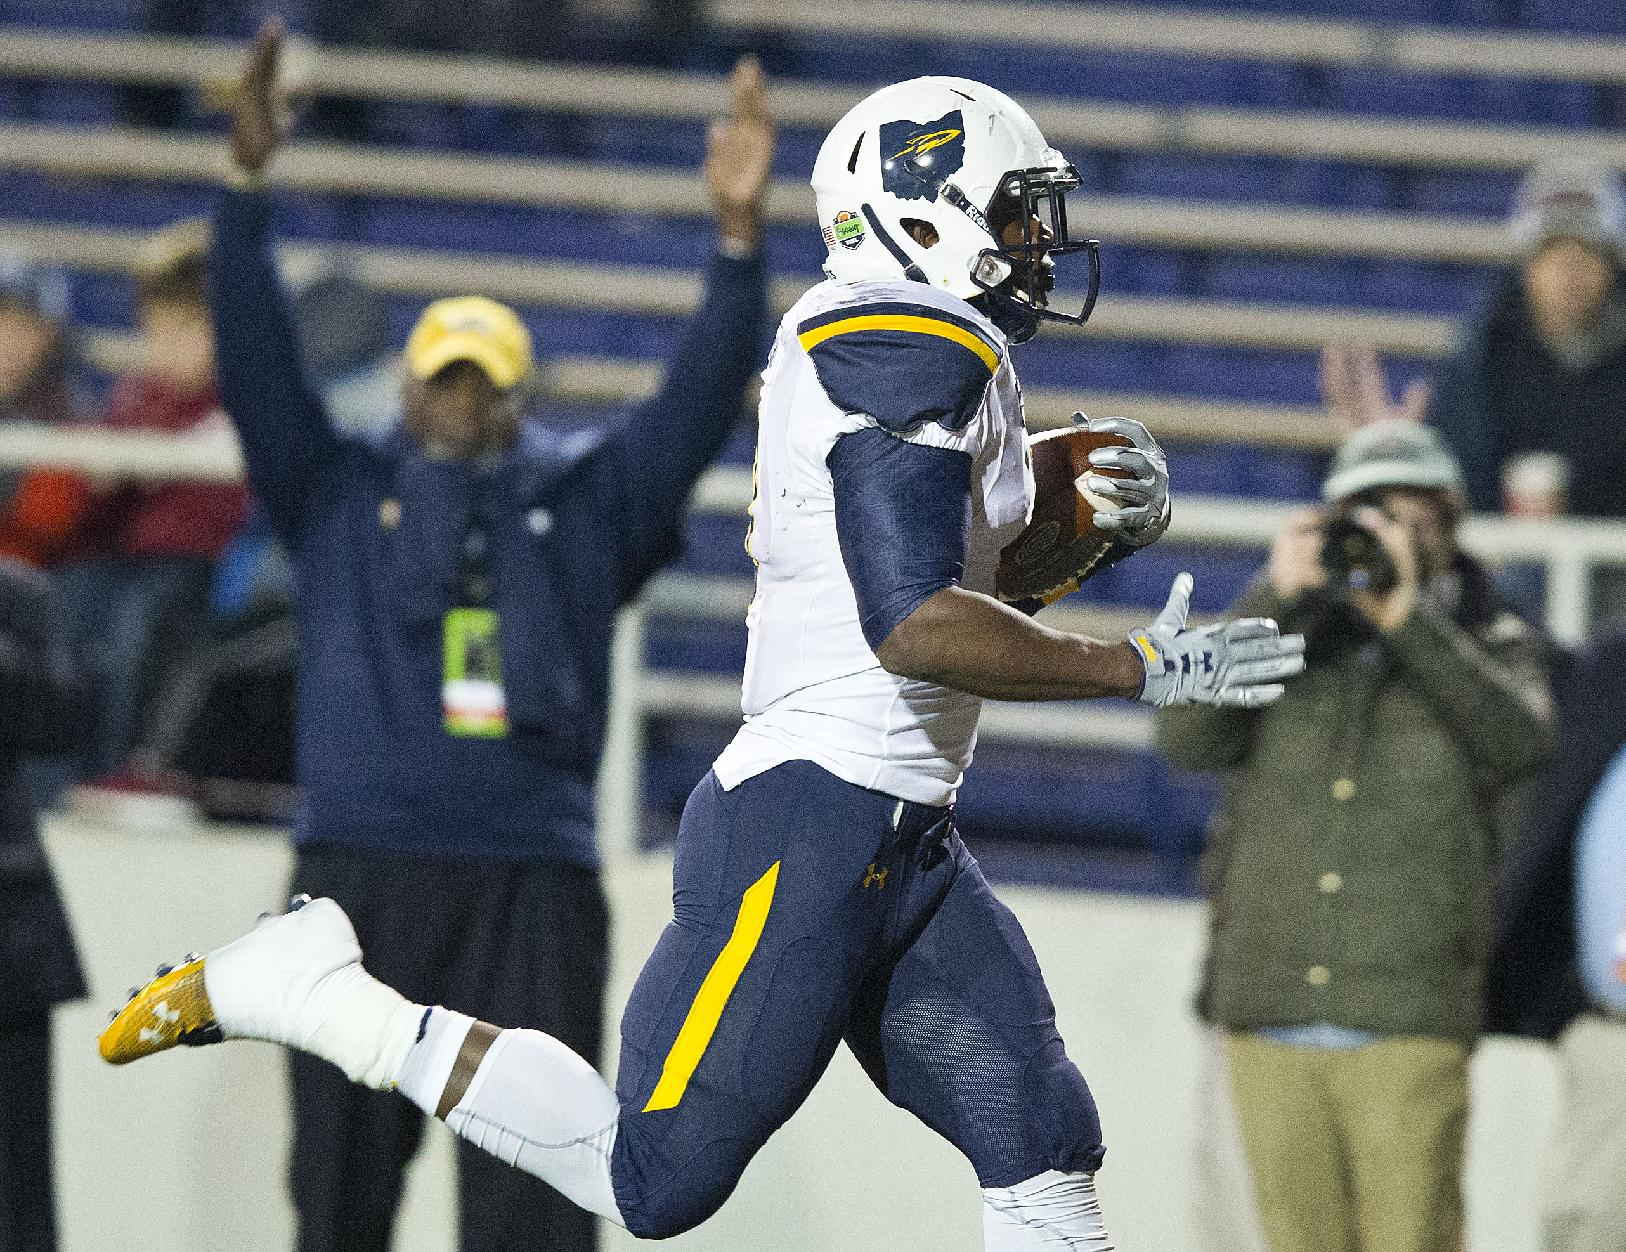 Toledo running back Kareem Hunt (3) runs in for a touchdown during the first half of the GoDaddy Bowl NCAA college football game against Arkansas State in Mobile, Ala. (AP Photo/Brynn Anderson, File)